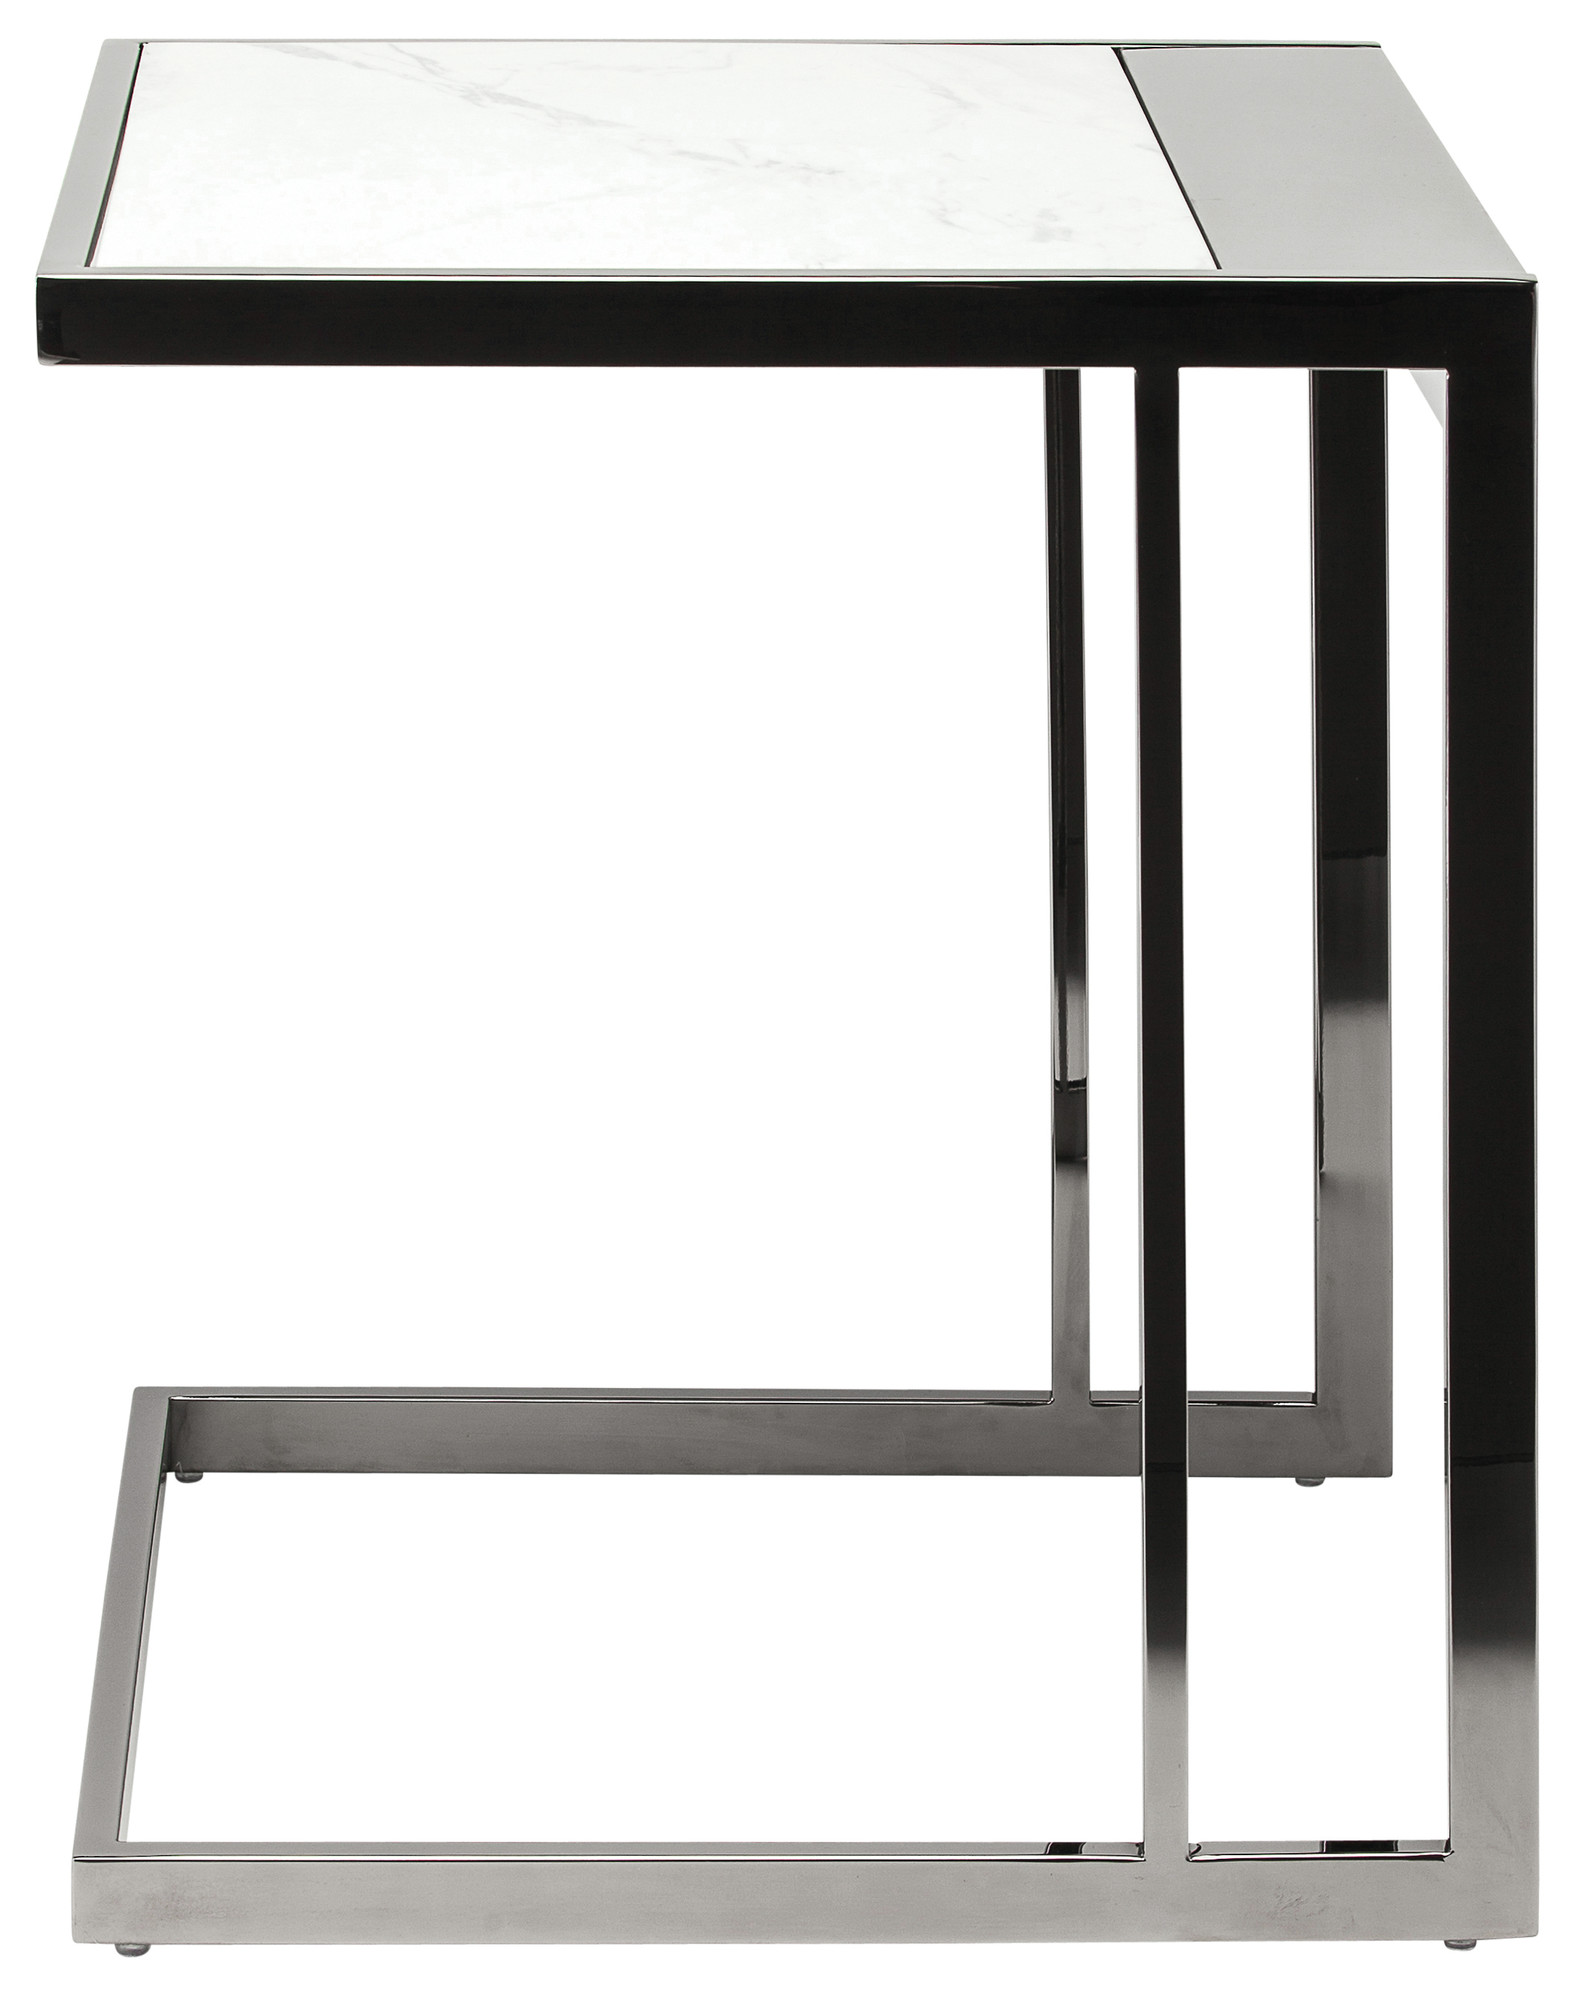 ethan-nuevo-black-side-table-marble.jpg